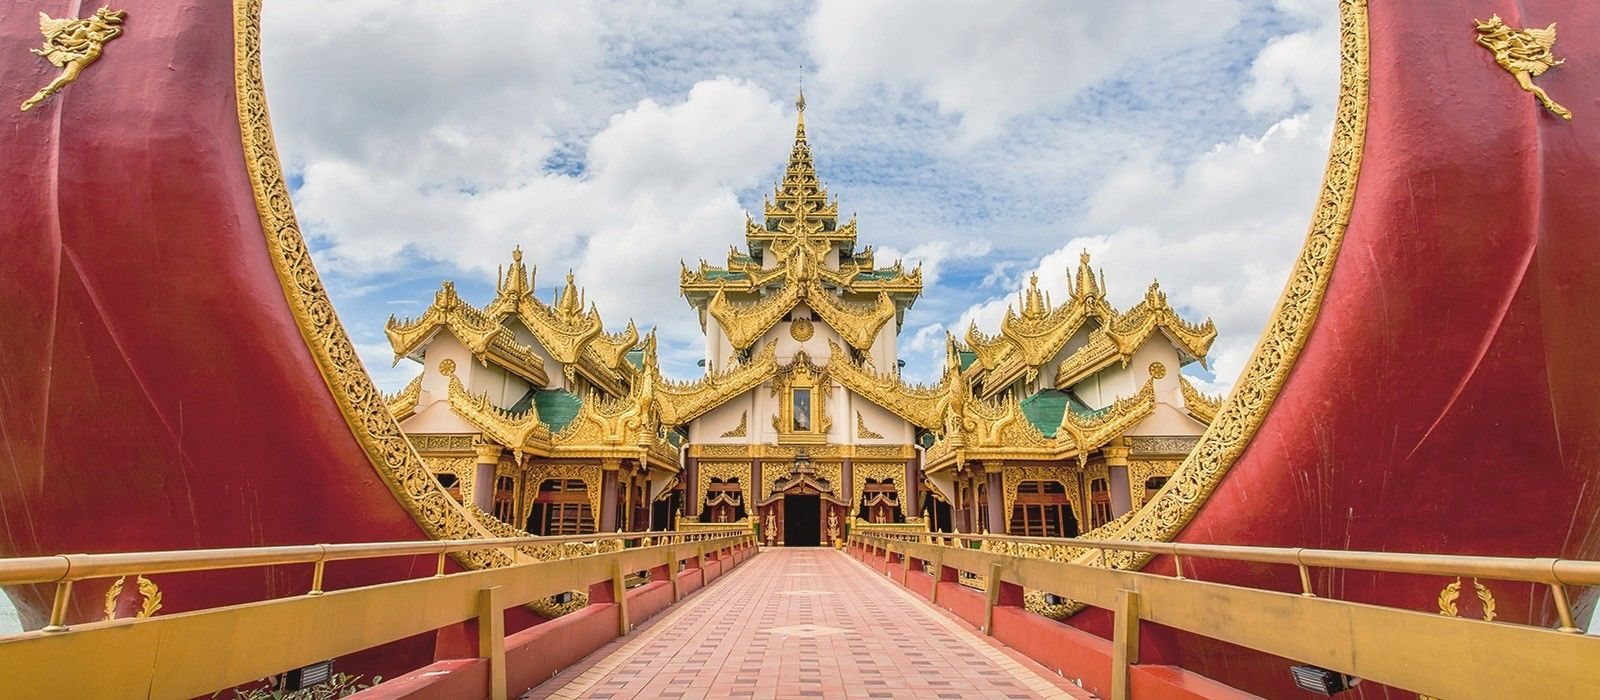 The Best of Myanmar Tour Trip 1